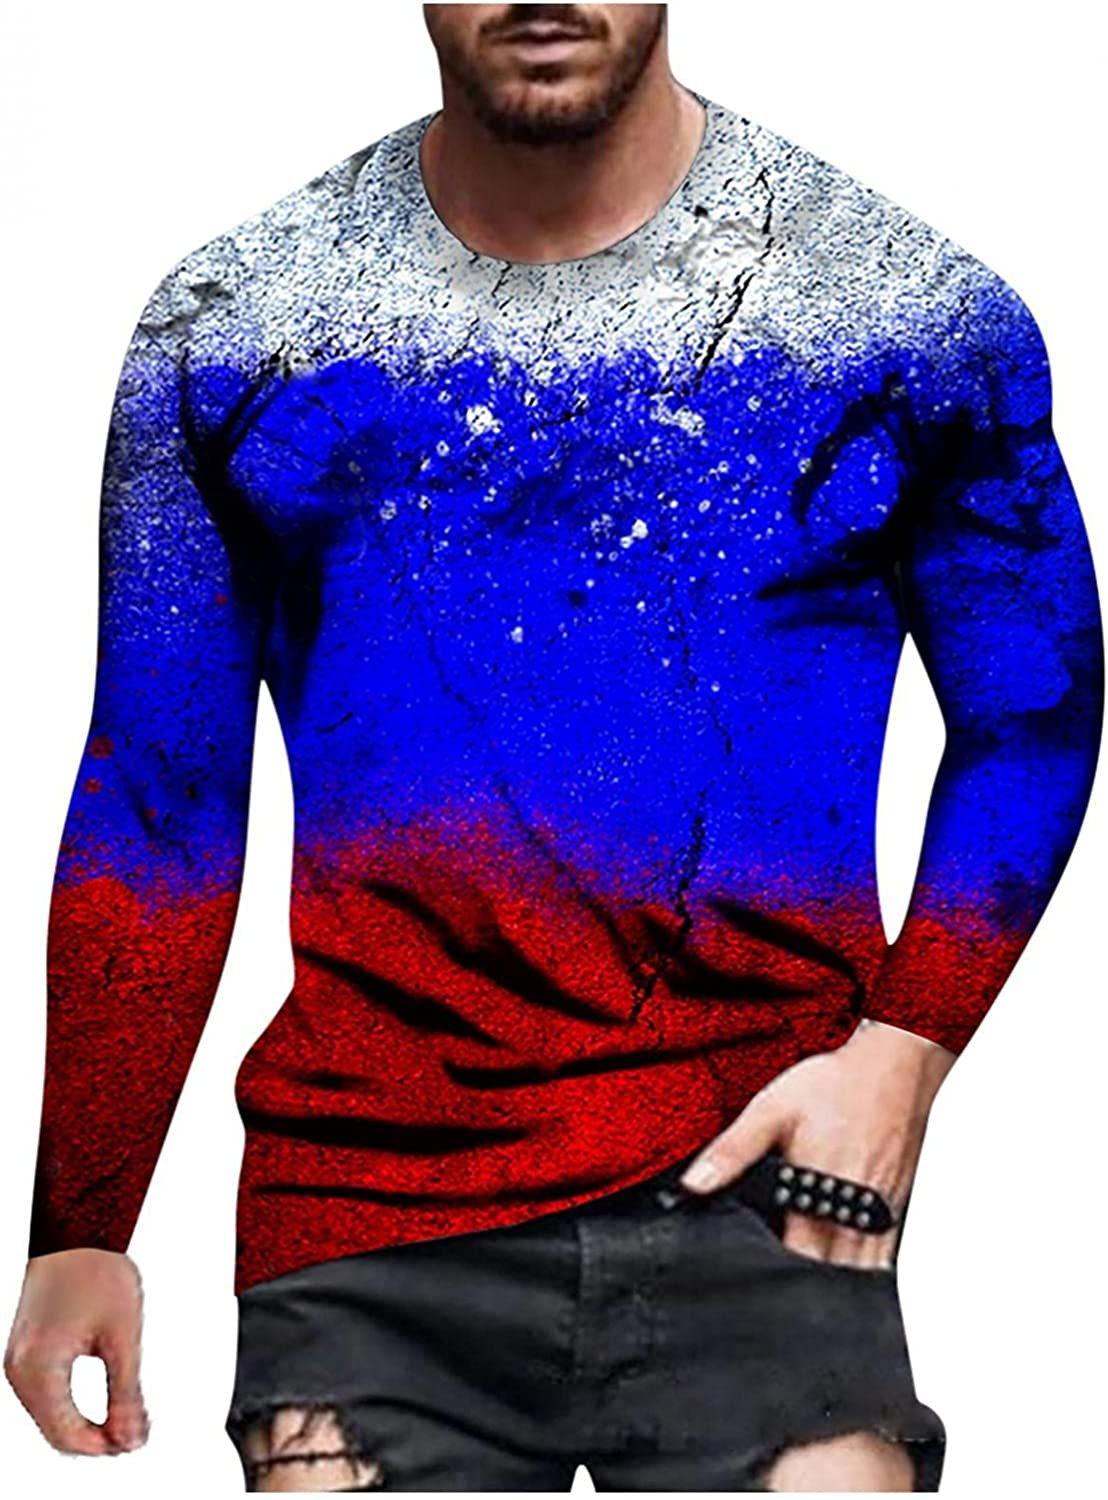 Long Sleeve Tee Shirts for Men Floral Graphic Crewneck Sweatshirt Casual Men's T-Shirts Muscle ASport Pullover Top